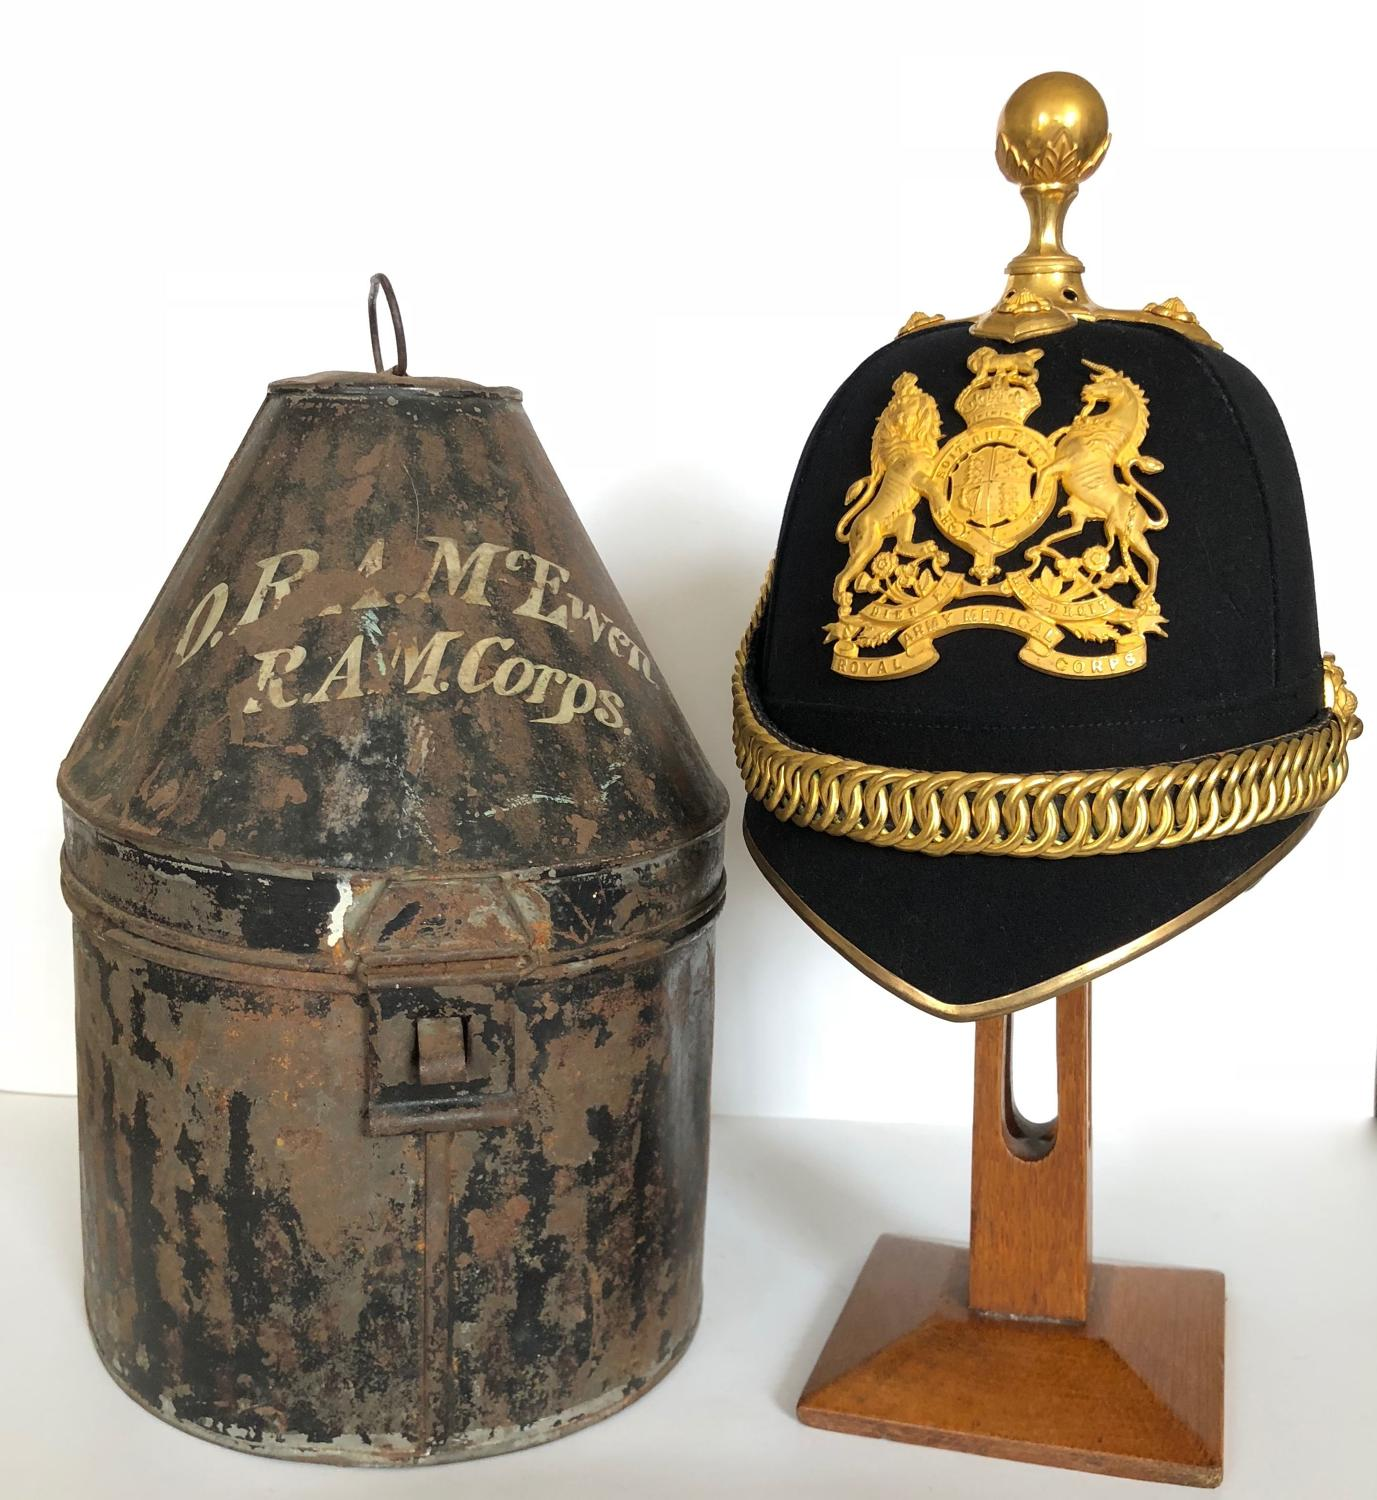 RAMC / Cheshire Regiment Officer's Home Service Pattern Helmet.